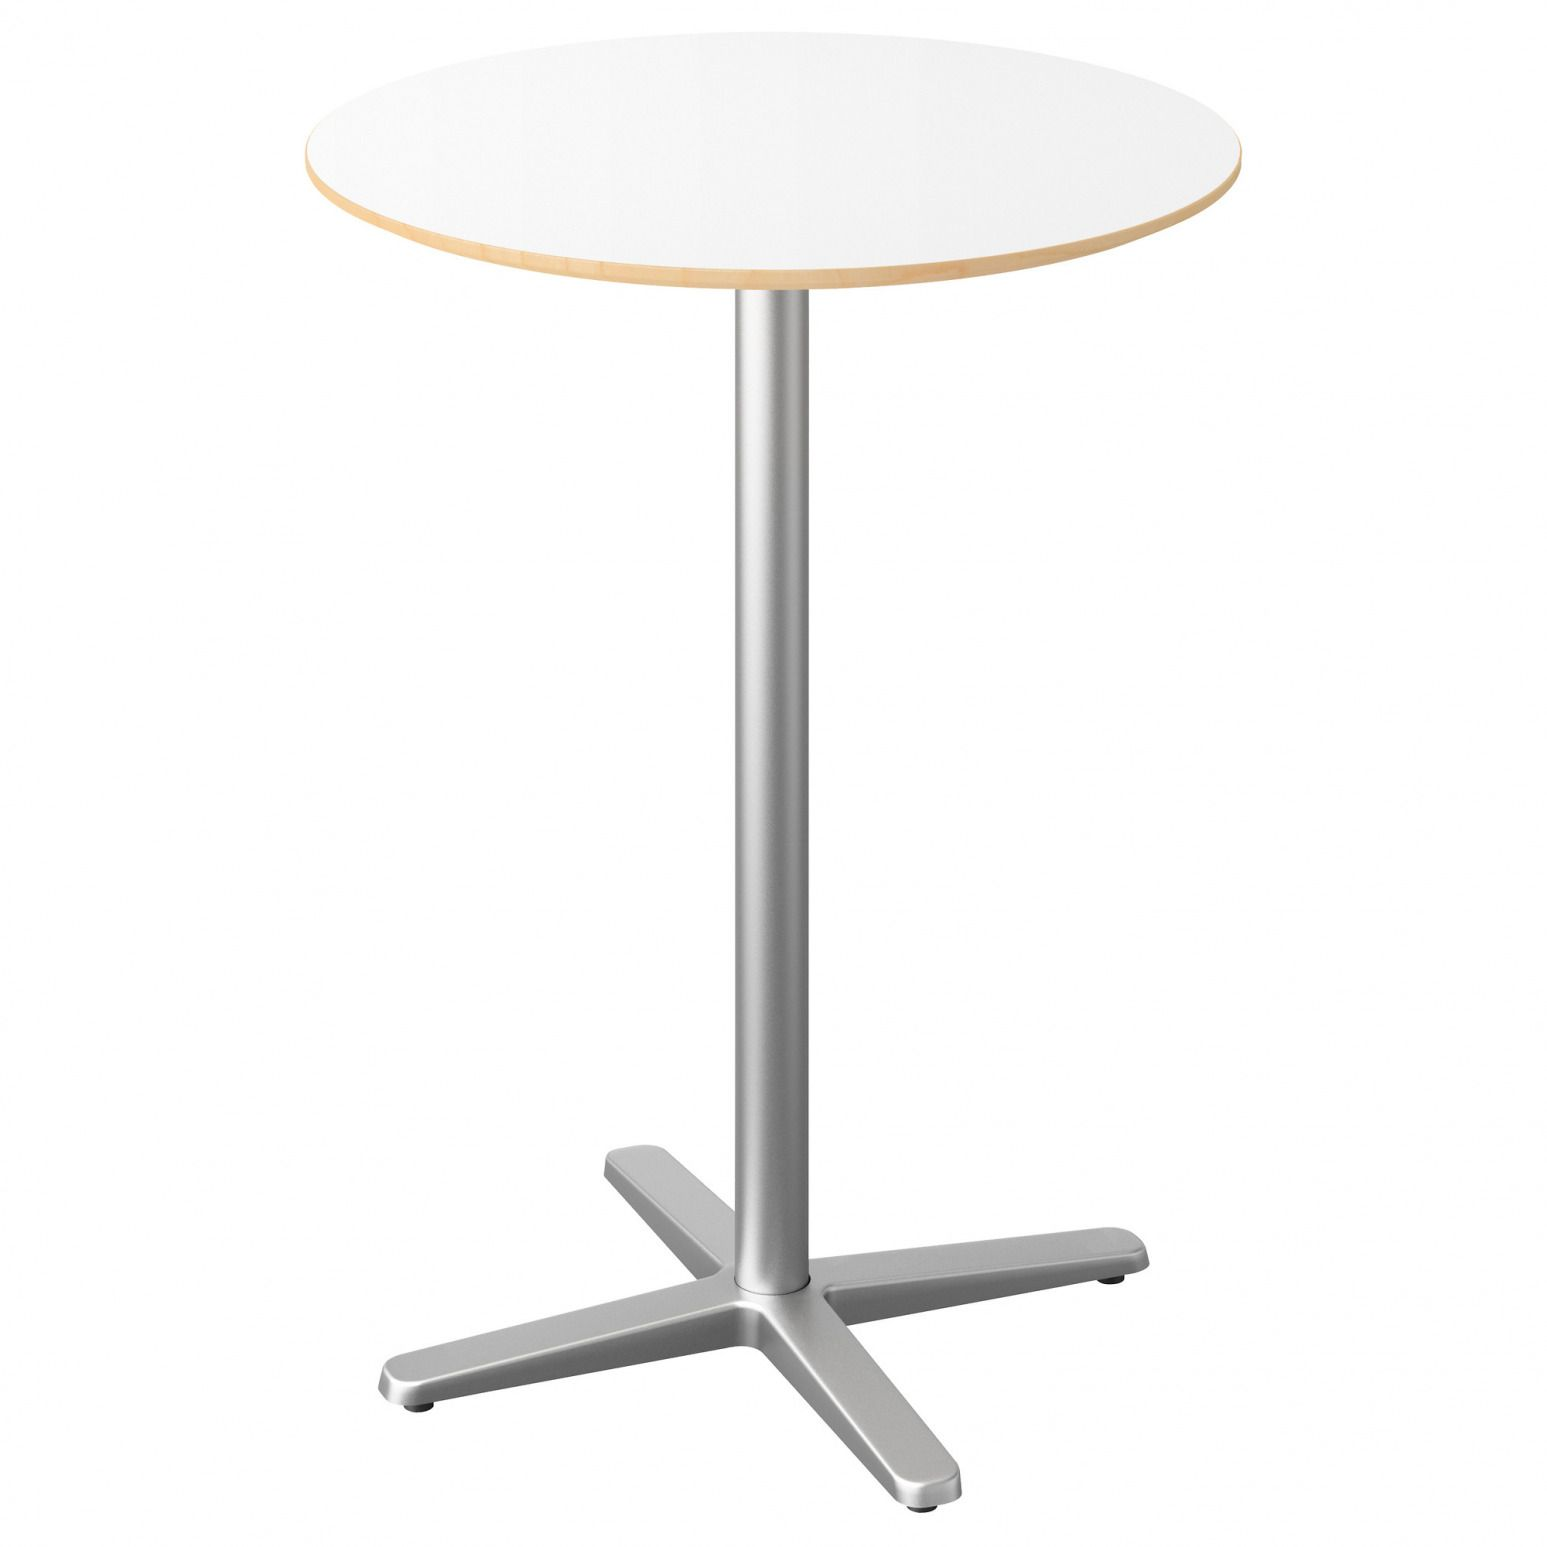 Sedia Vilmar Ikea Nera Pin By Annora On Round End Table Bar Table Ikea Ikea Table